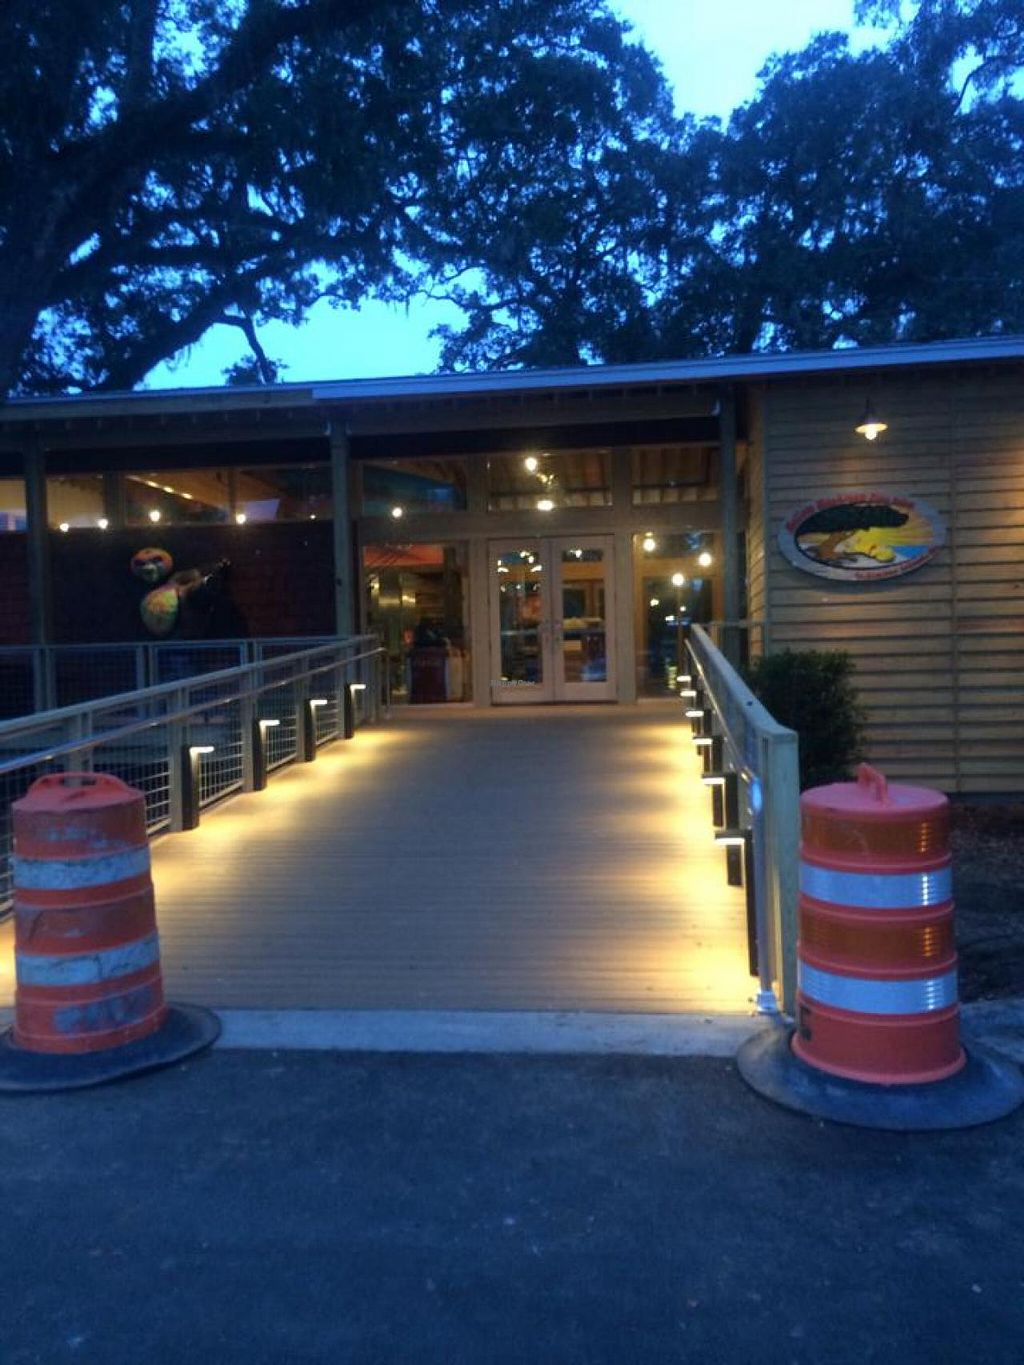 """Photo of Mellow Mushroom  by <a href=""""/members/profile/community"""">community</a> <br/>Mellow Mushroom <br/> May 17, 2015  - <a href='/contact/abuse/image/58512/102569'>Report</a>"""